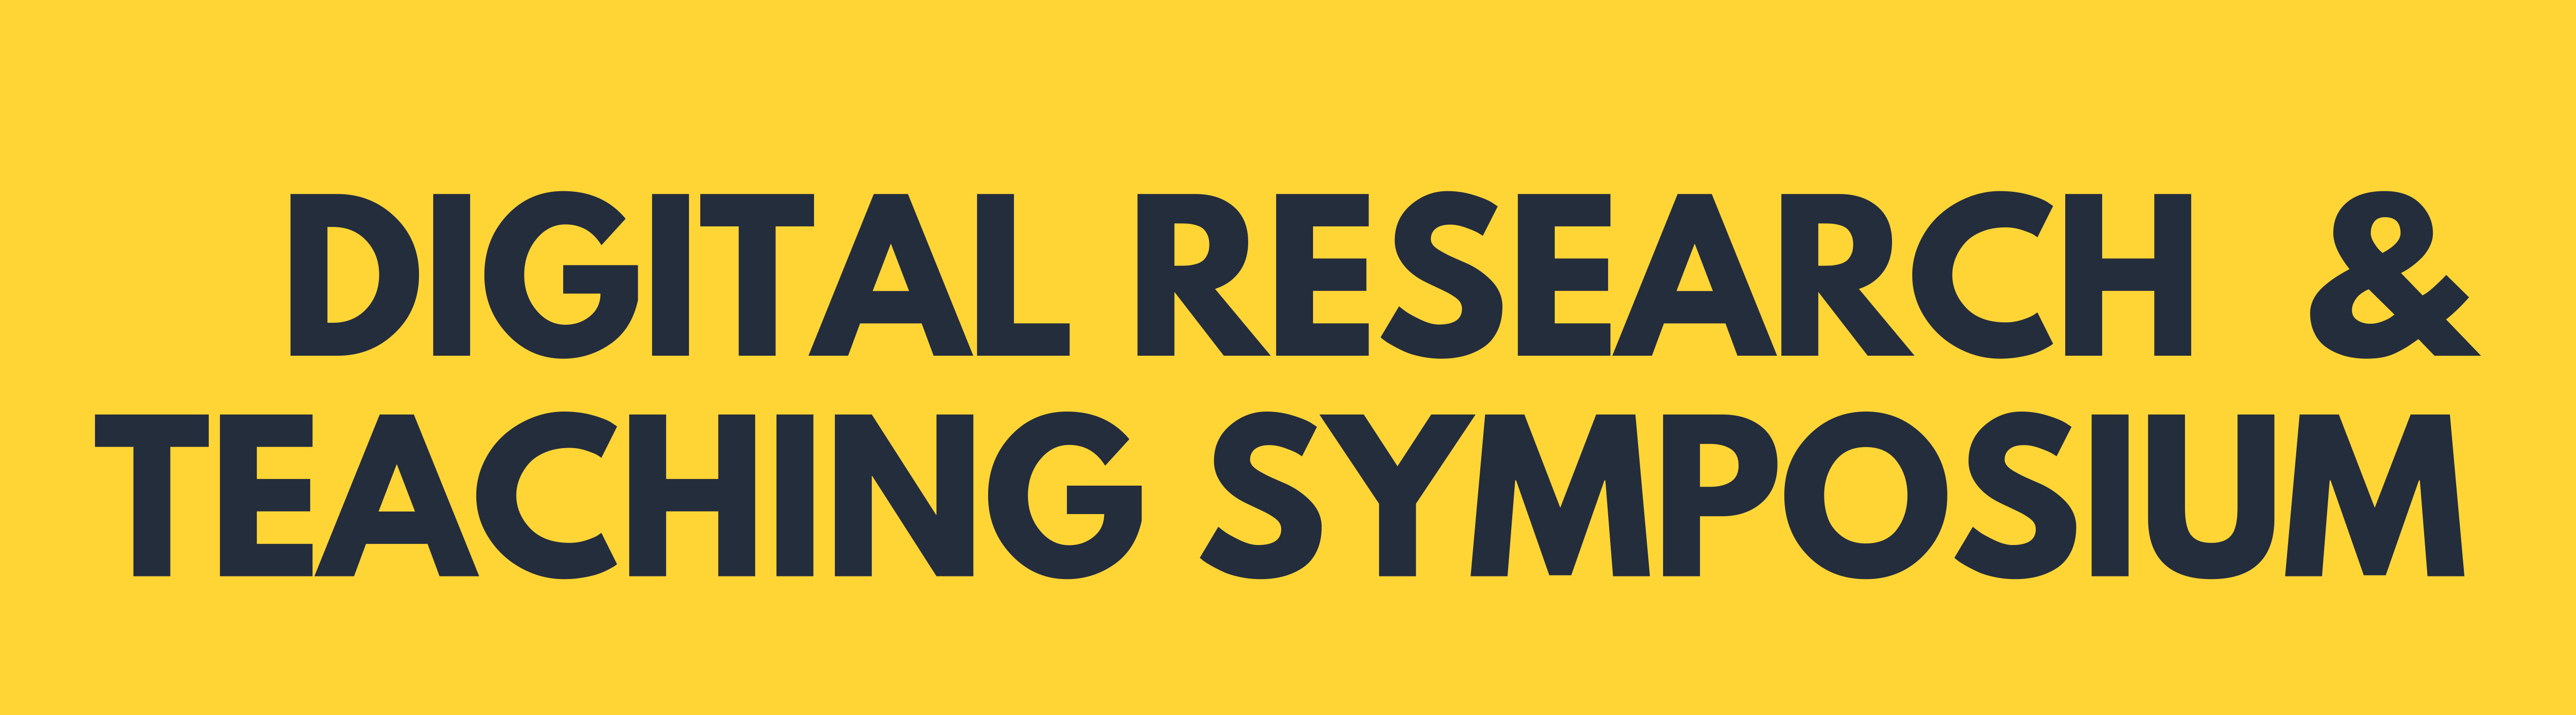 Digital Research and Teaching Symposium